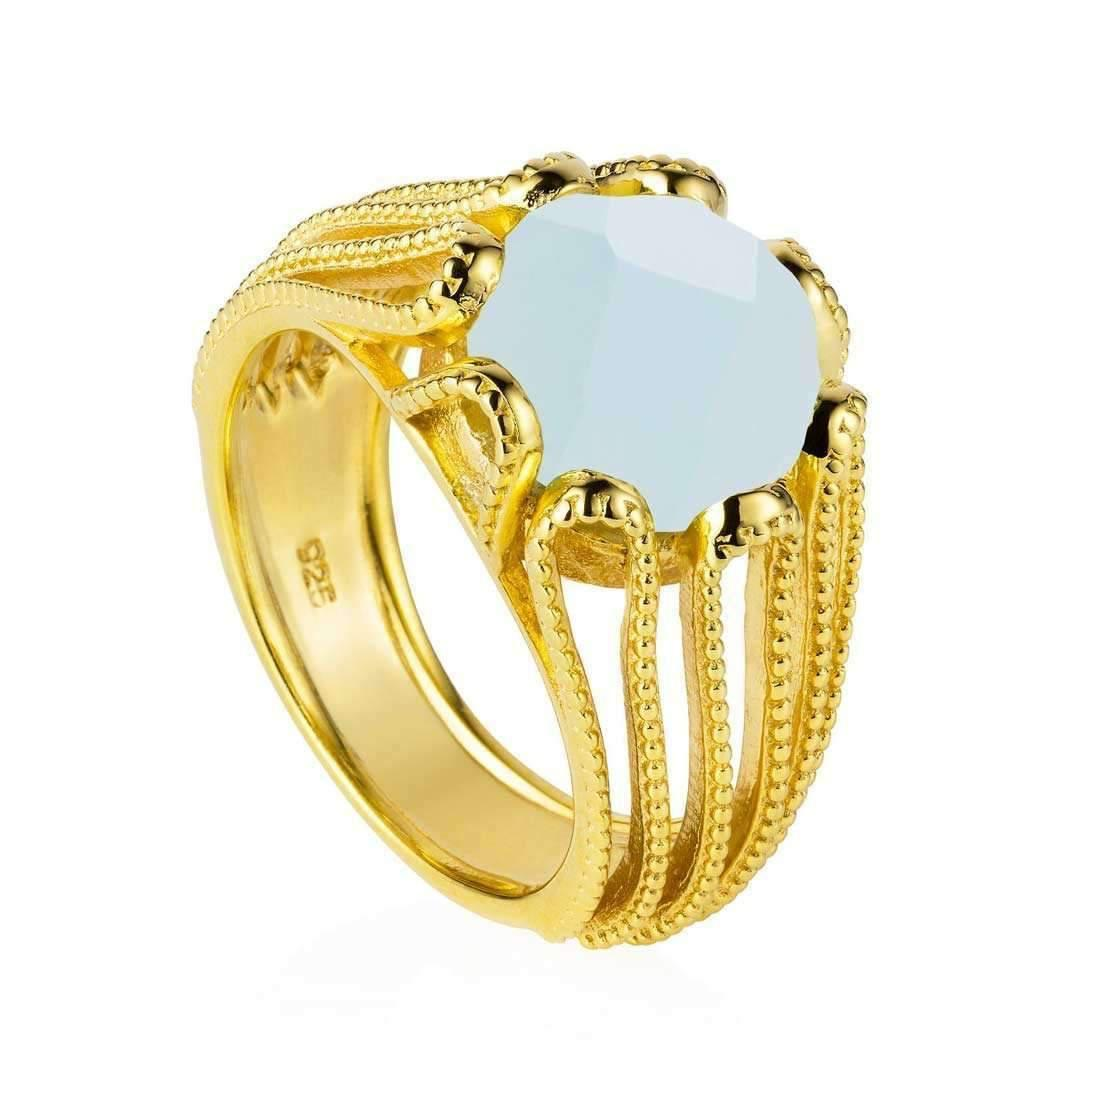 Neola Stacking Gold Ring - UK P - US 7 1/2 - EU 56 1/2 xN7HR